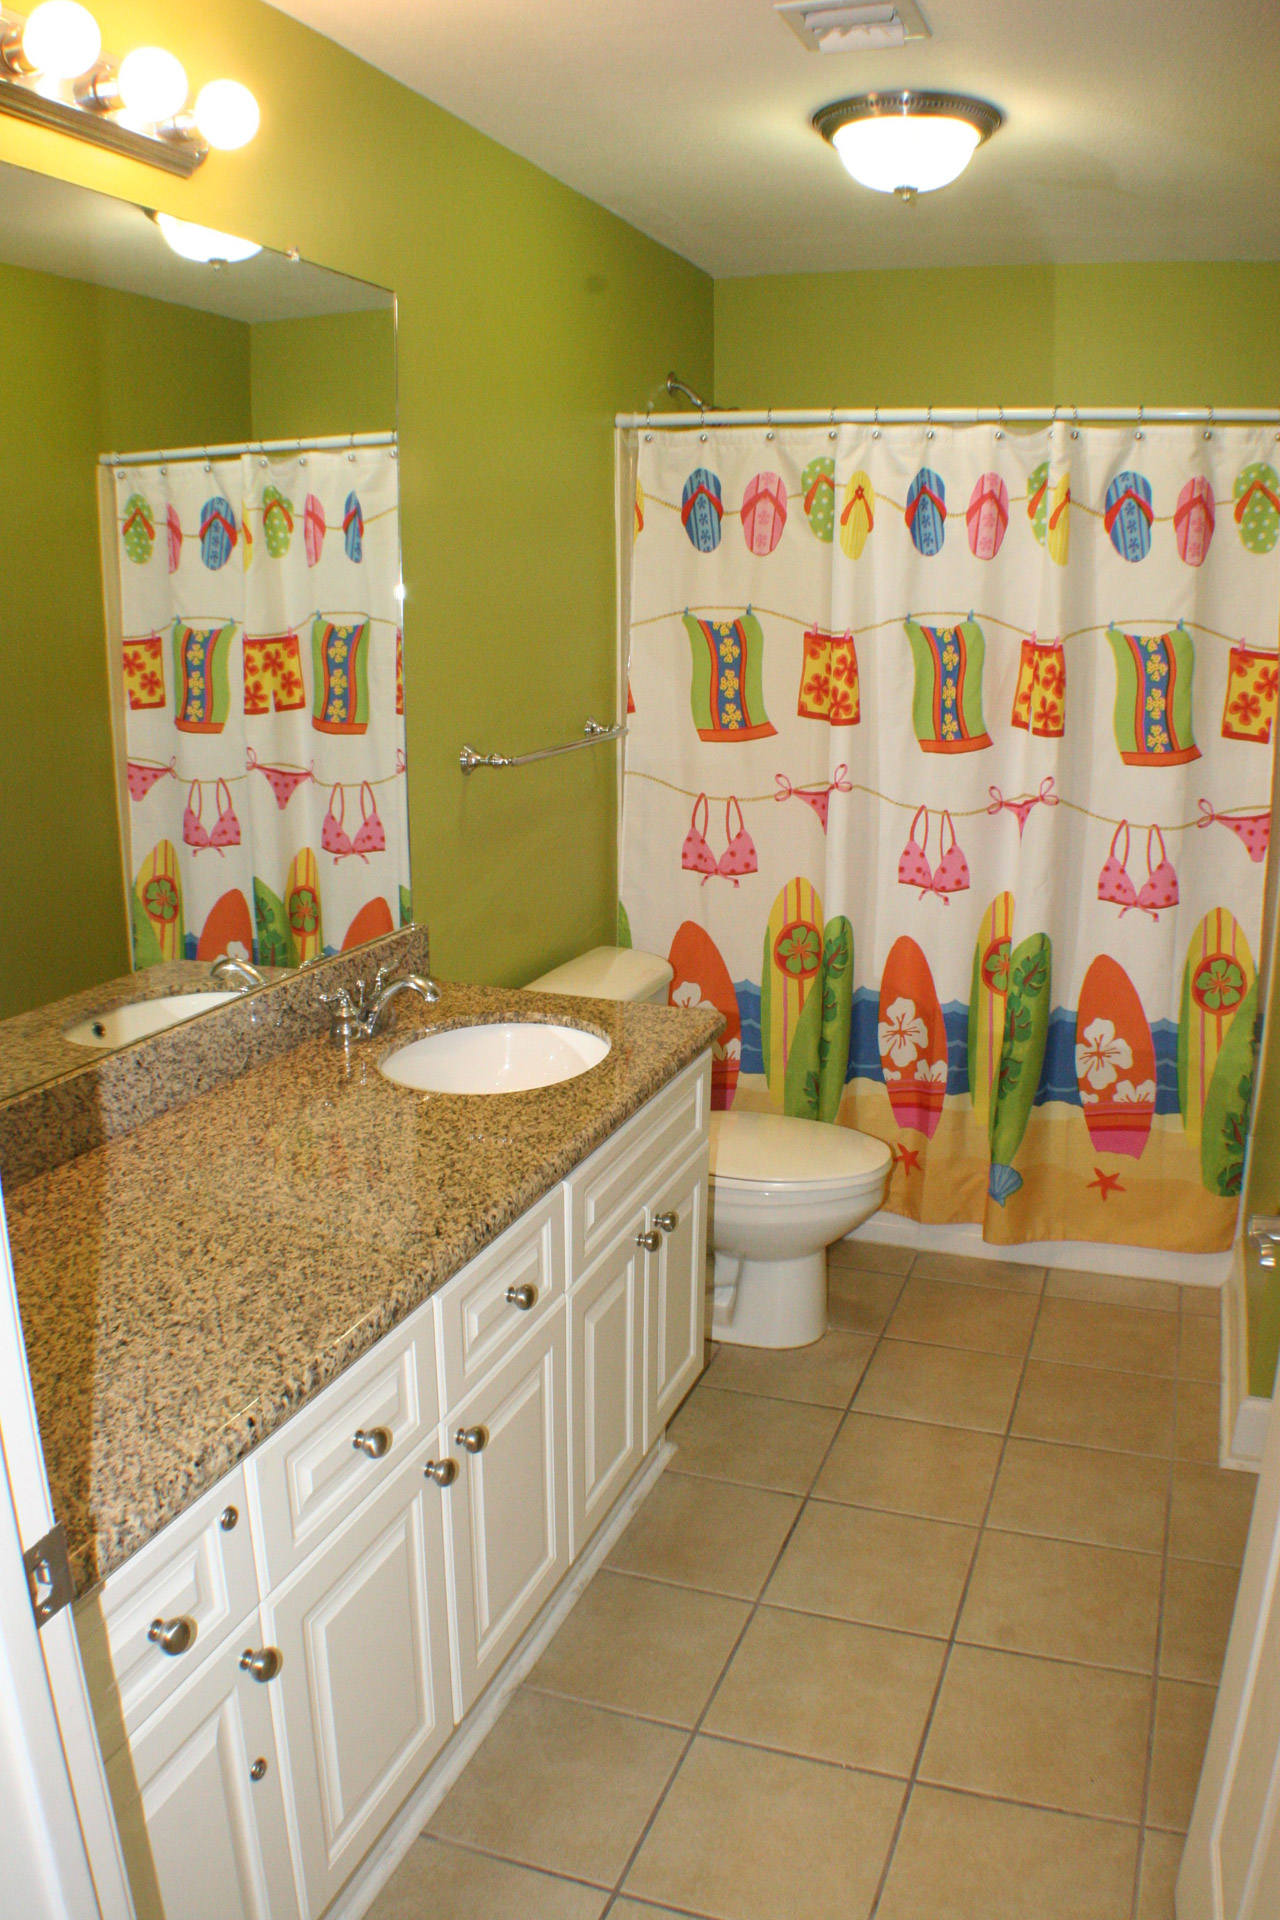 Hallway Bathroom at Gulf Shores Condo Rental